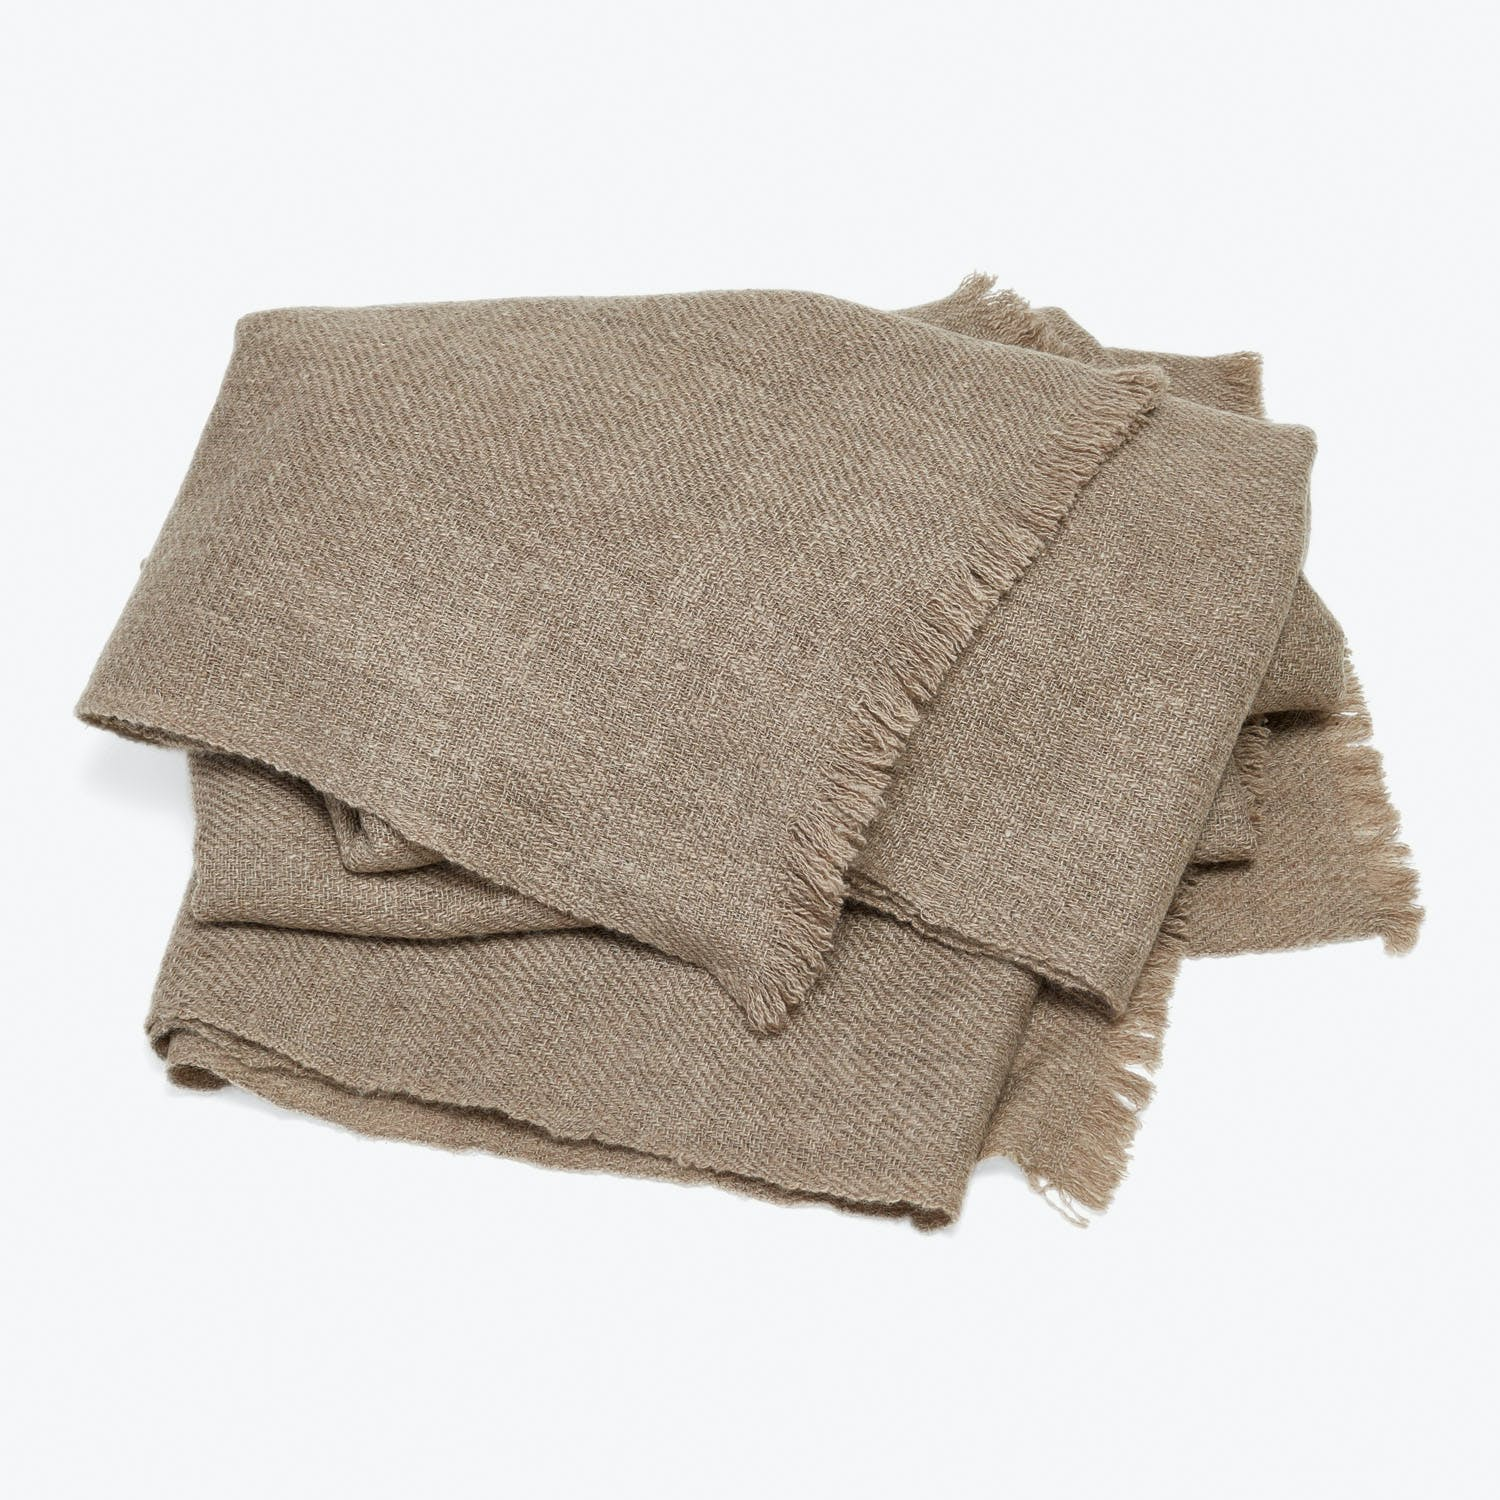 Fibre Tibet Chai Wallah Cashmere Throw Natural